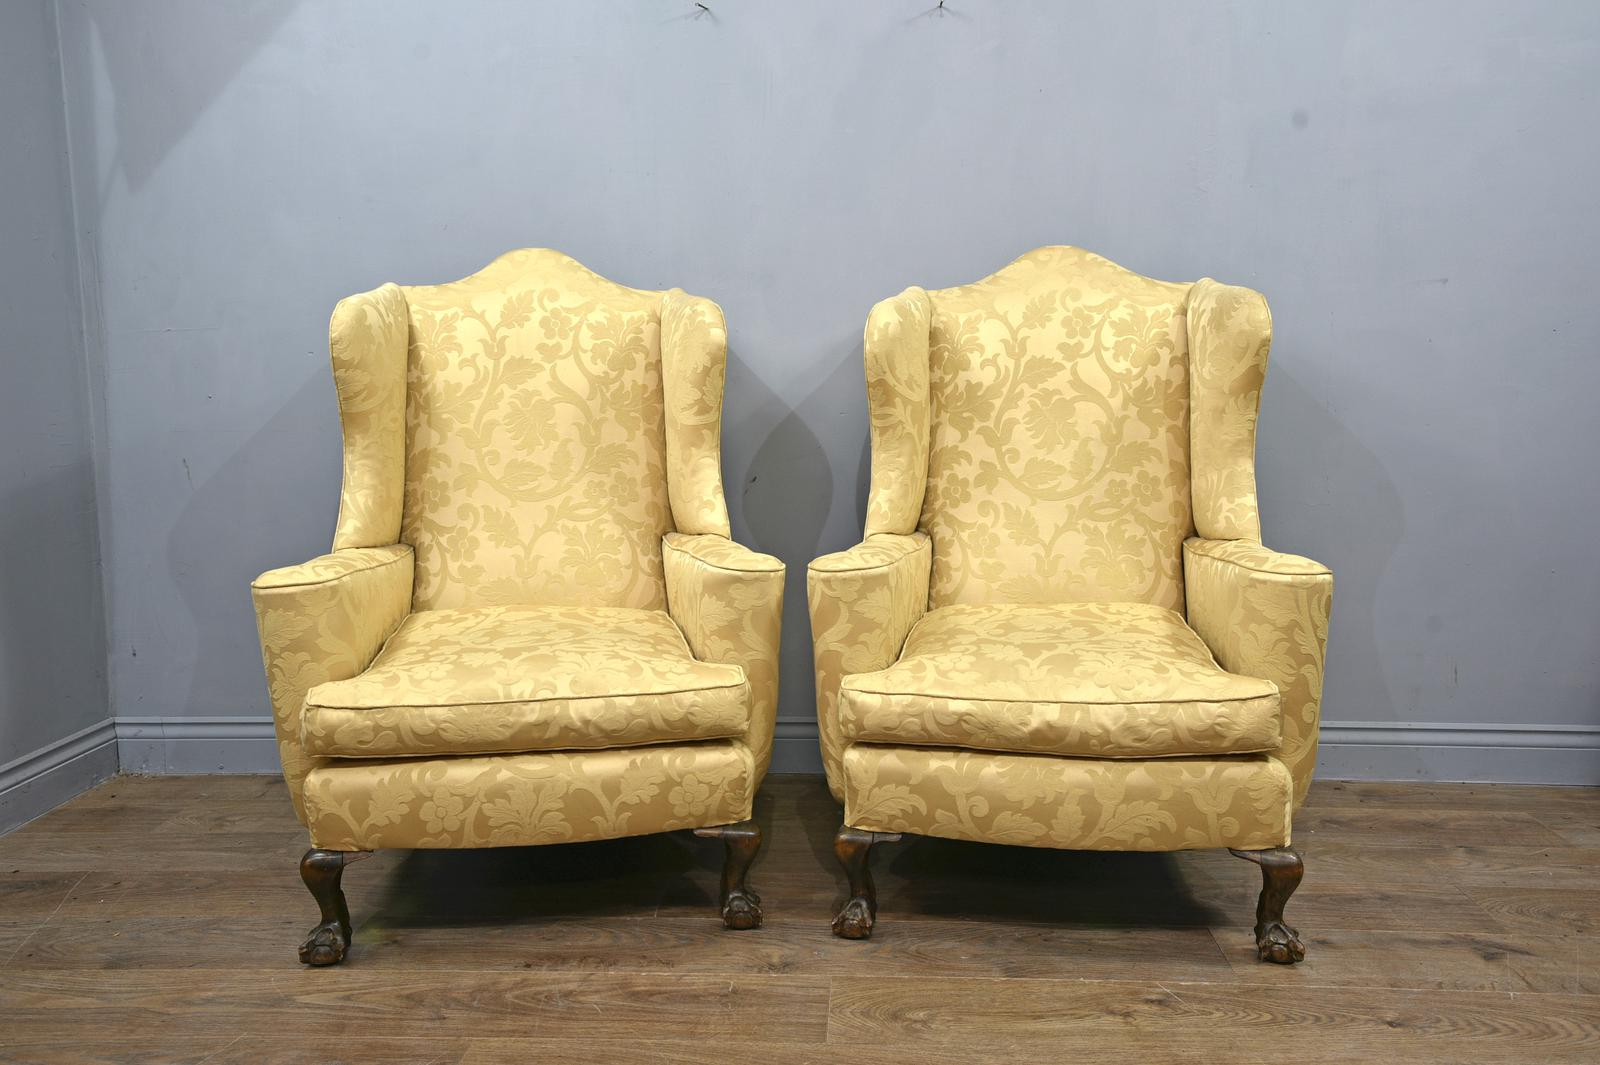 pair of antique wingback arm chairs (1 of 1)